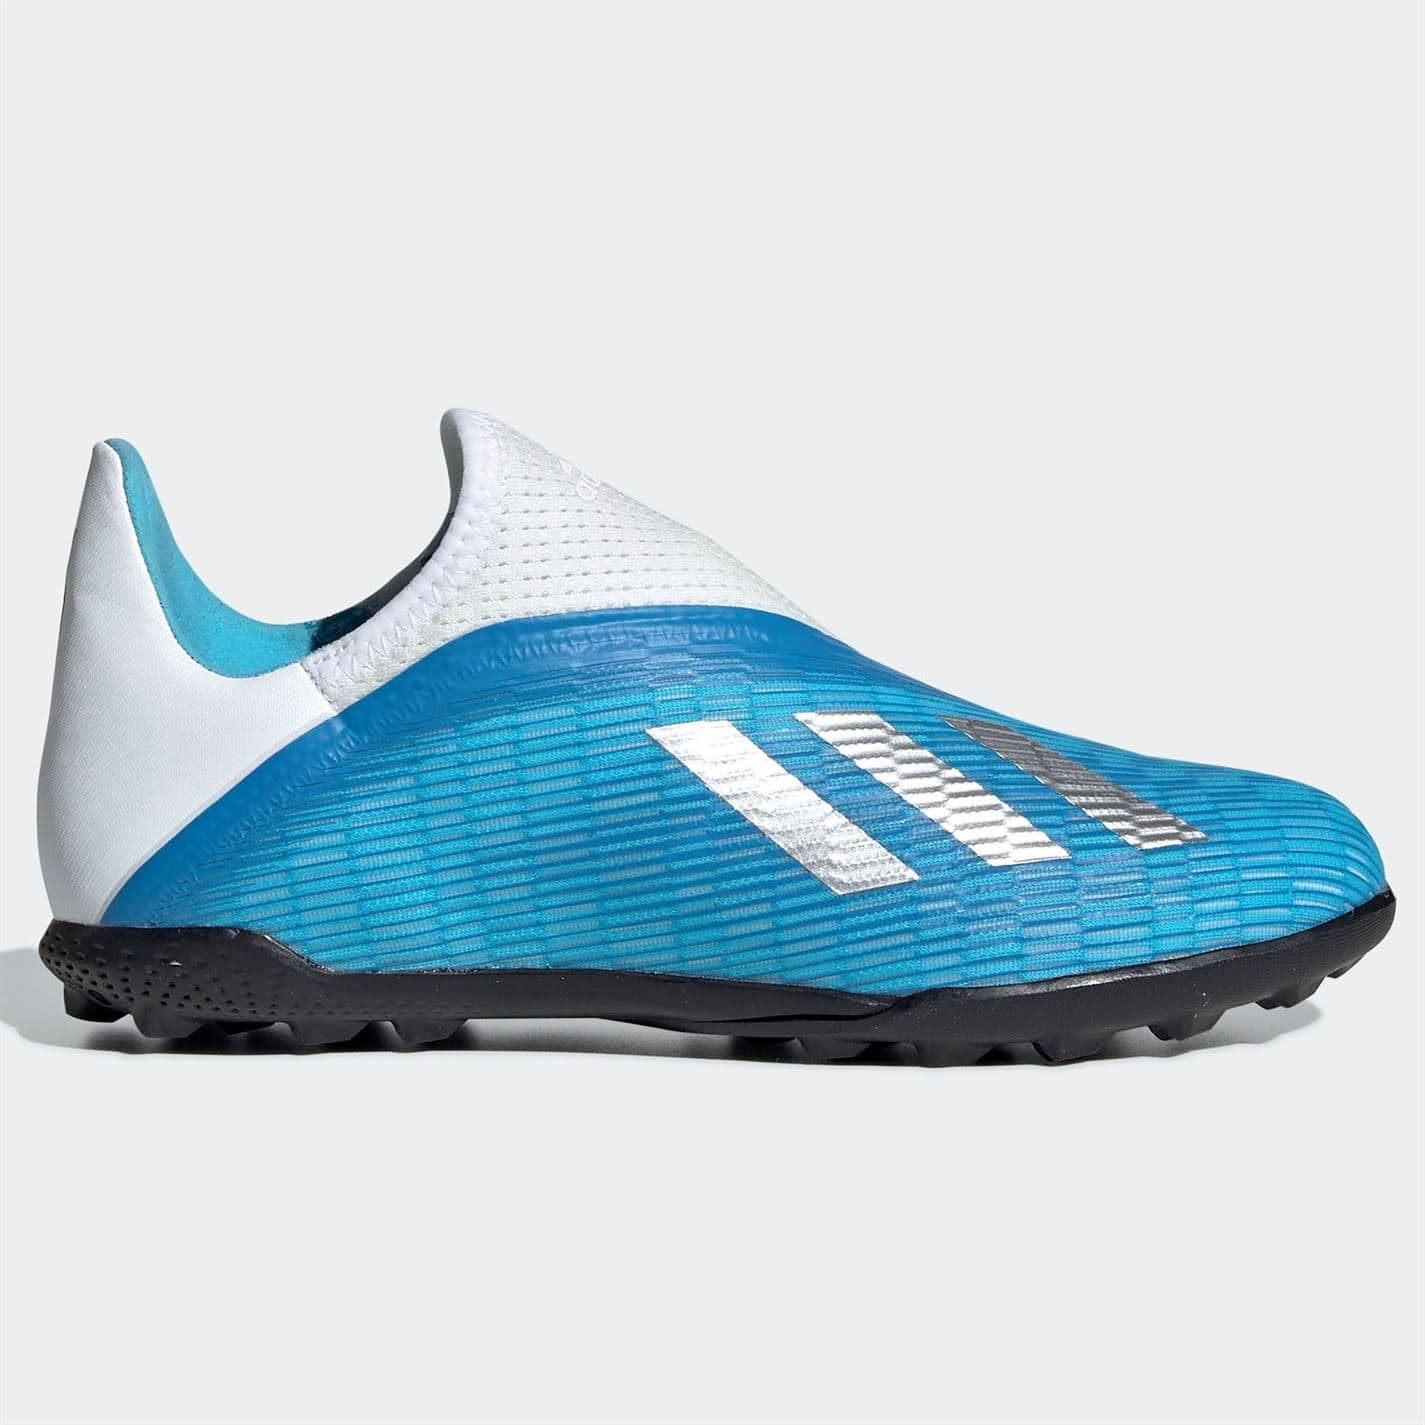 Details about adidas X 19.3 Laceless Astro Turf Football Boots Junior Boys  Cyan/Black